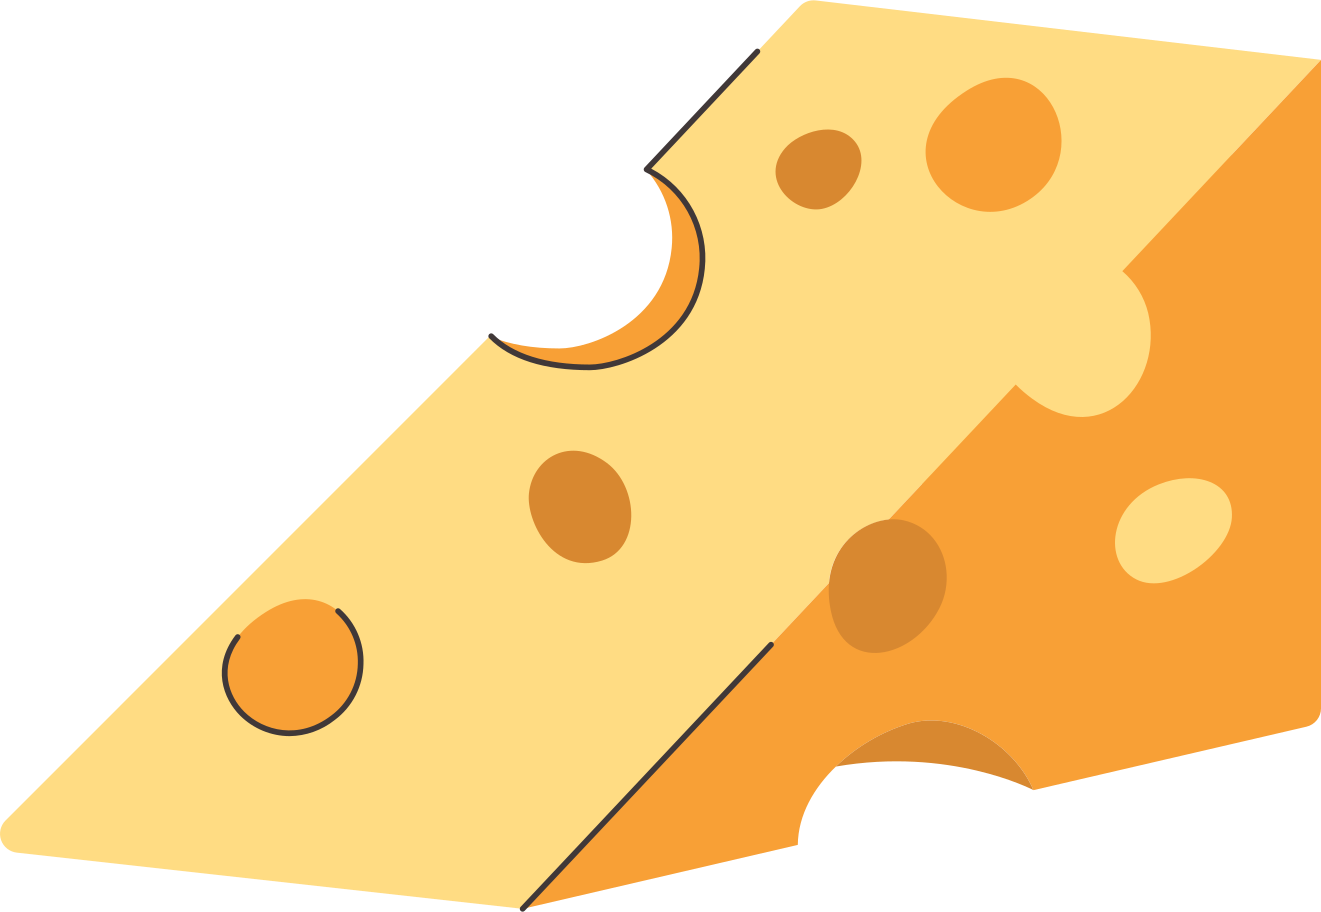 style cheese Vector images in PNG and SVG | Icons8 Illustrations